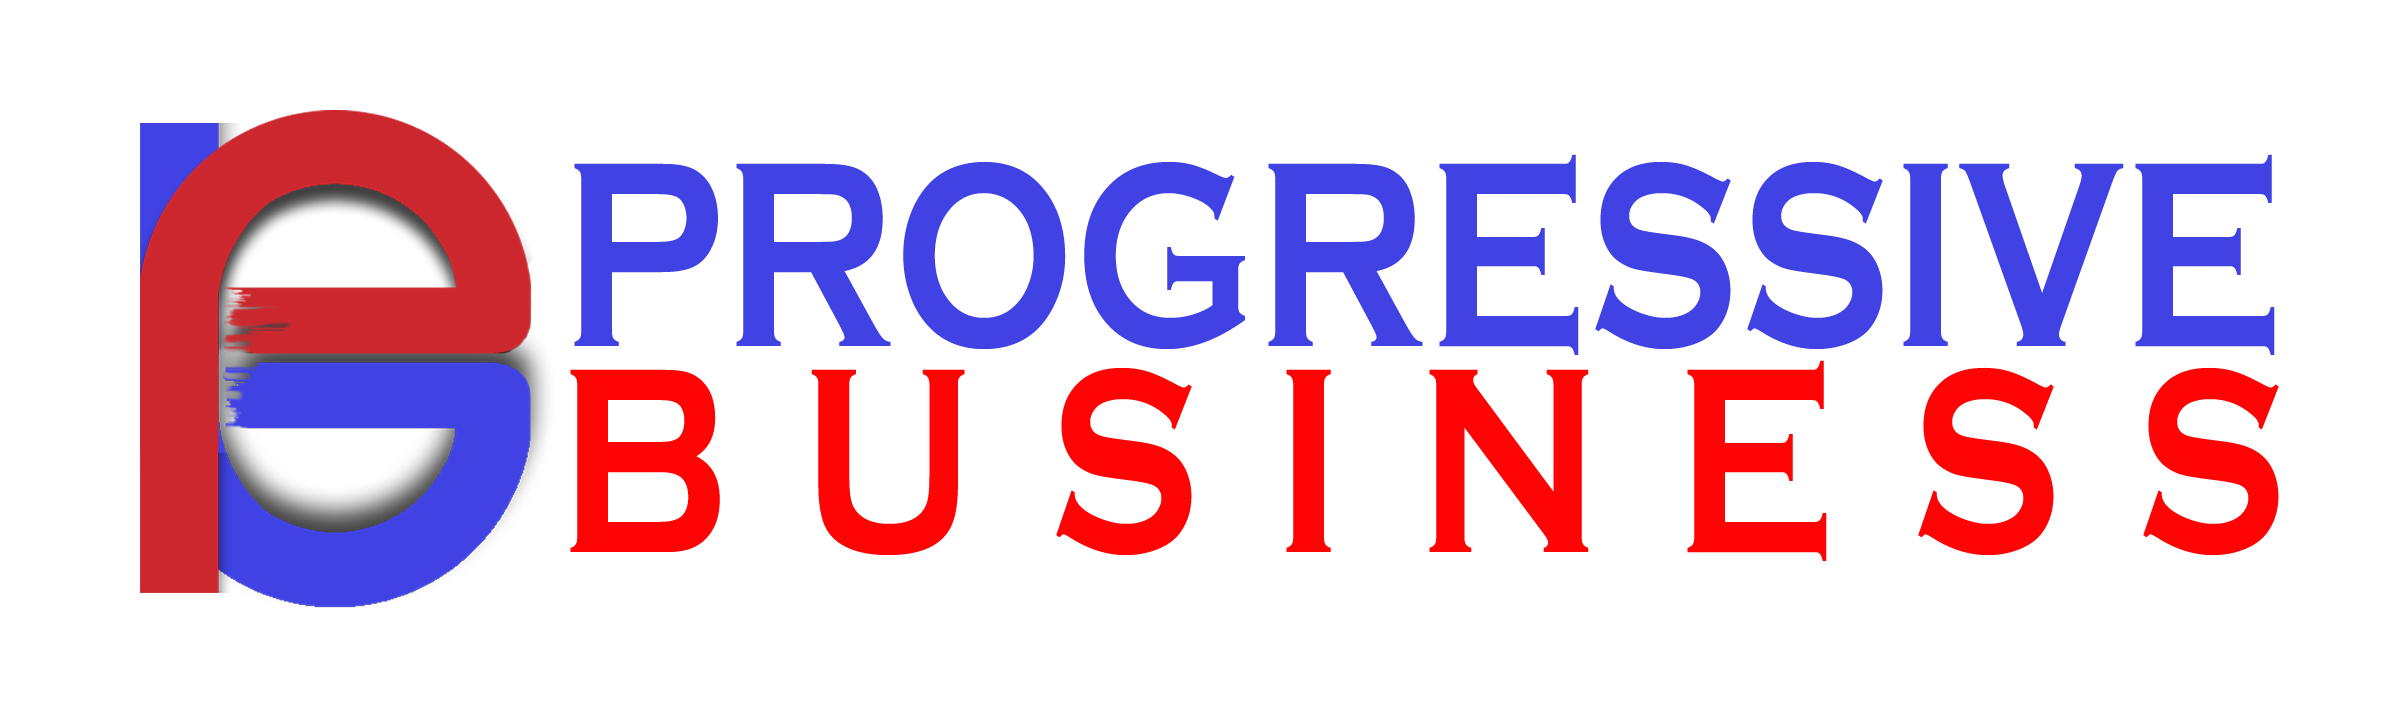 Logo Design by Kitz Malinao - Entry No. 18 in the Logo Design Contest Captivating Logo Design for Progressive Business.